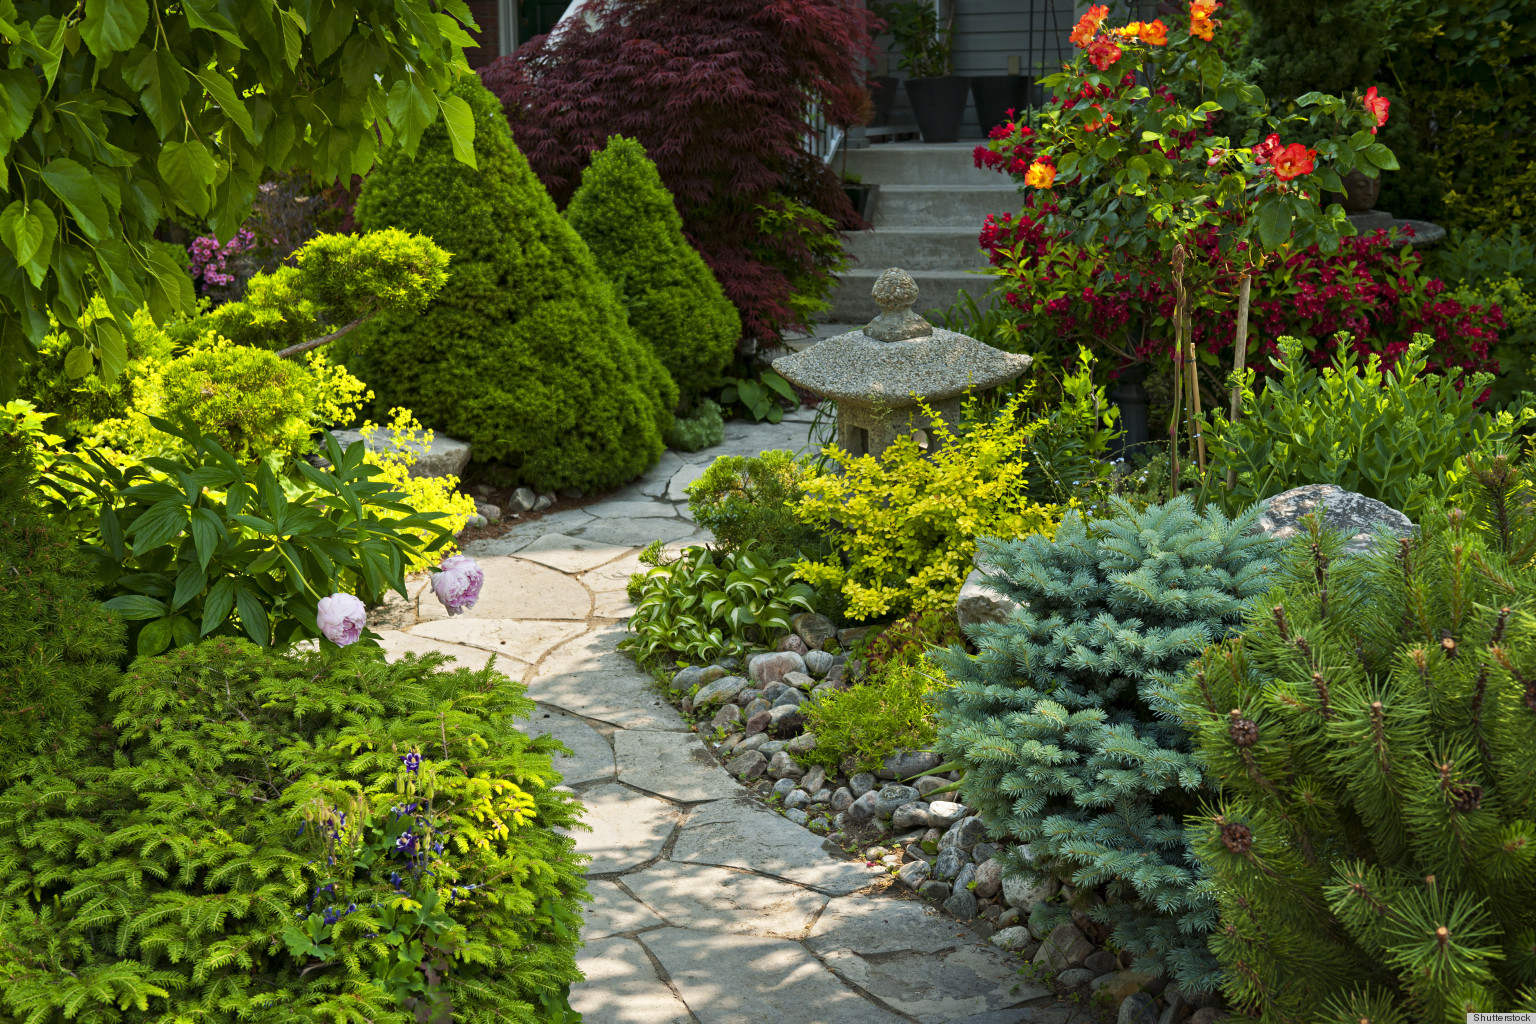 9 weekend diy ideas that will inspire your inner landscaper photos 9 weekend diy ideas that will inspire your inner landscaper photos huffpost workwithnaturefo